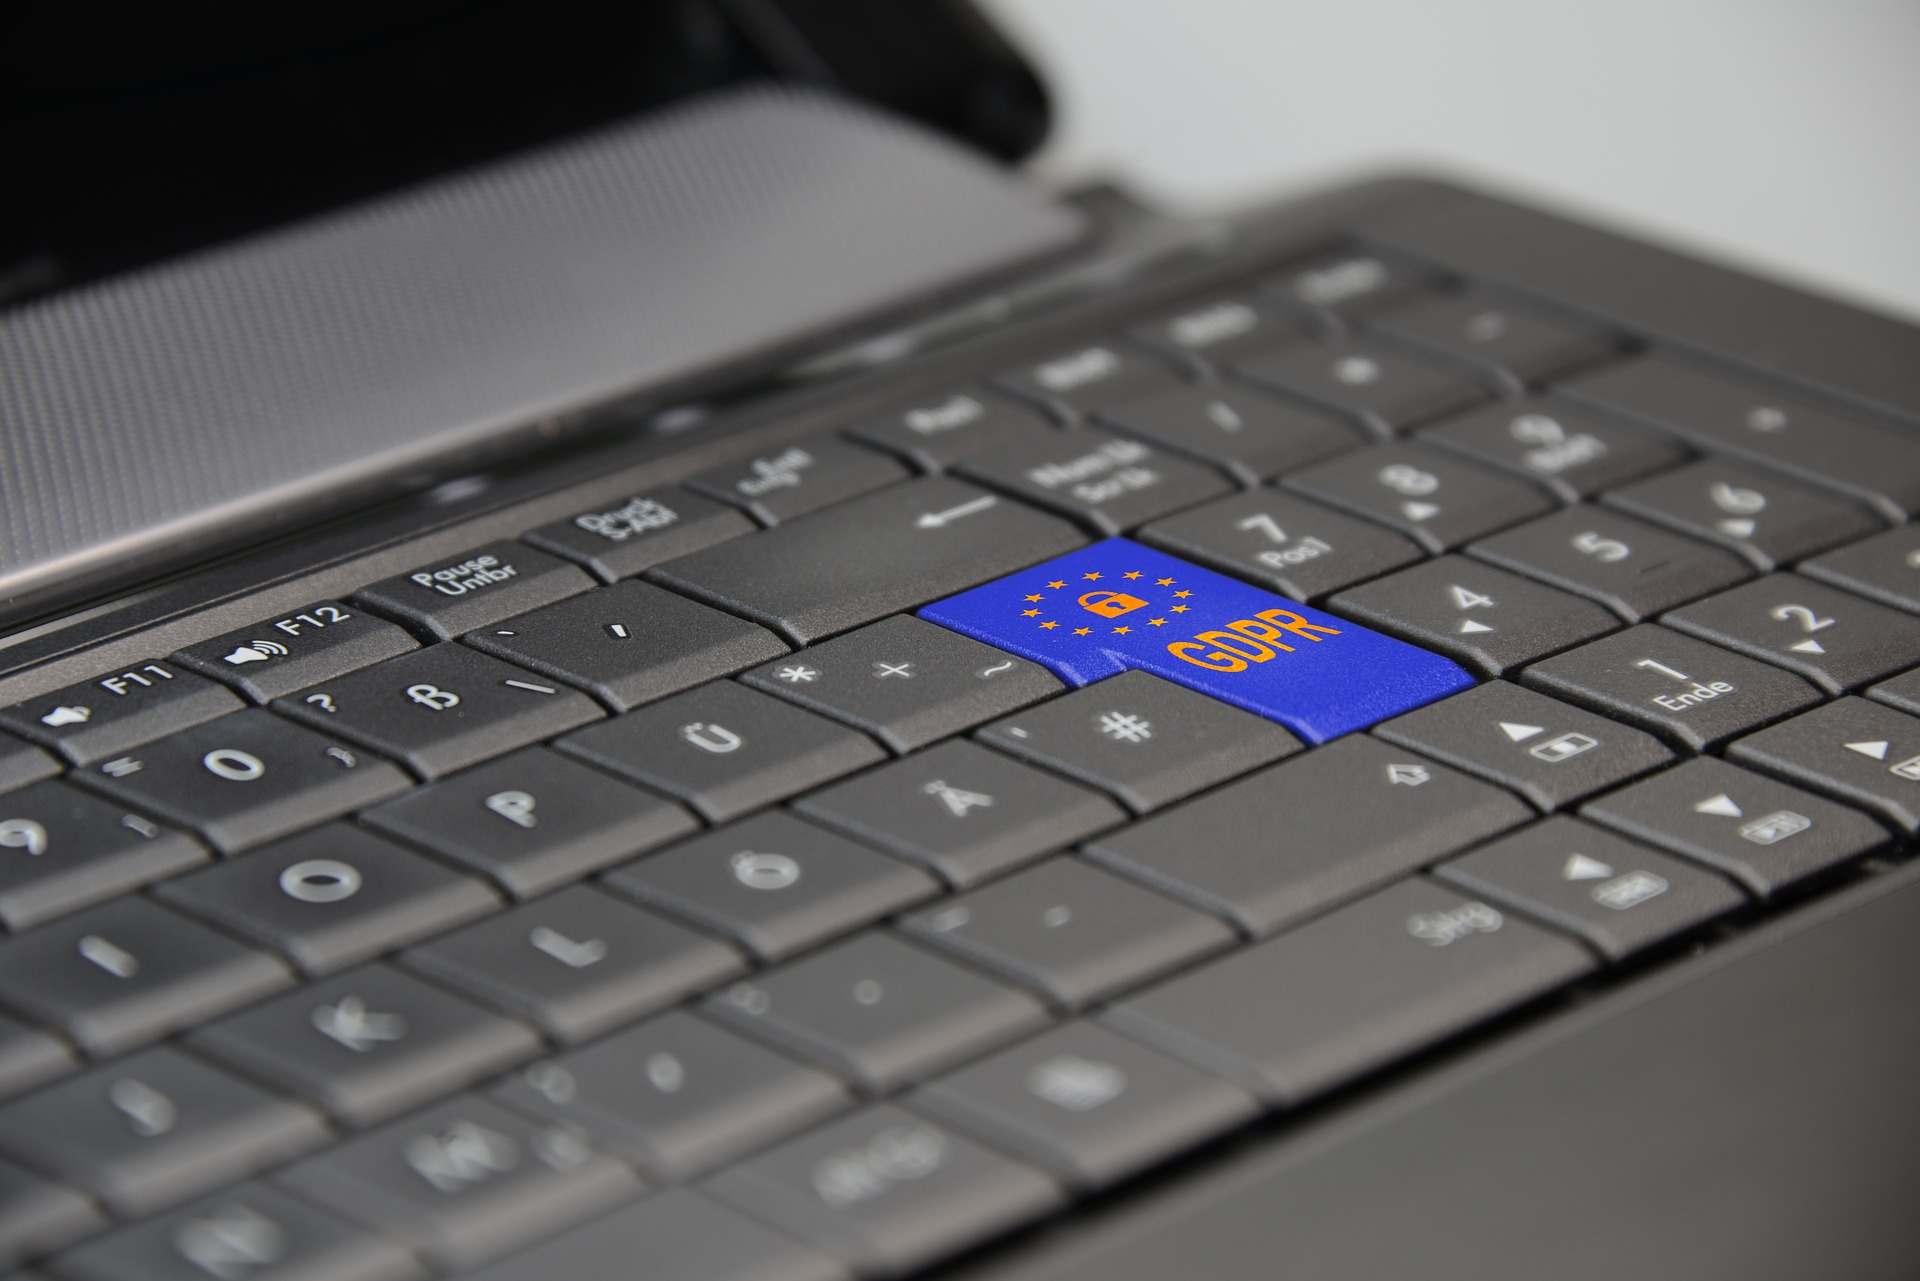 GDPR Consent Regulations Causing Confusion Among Marketers